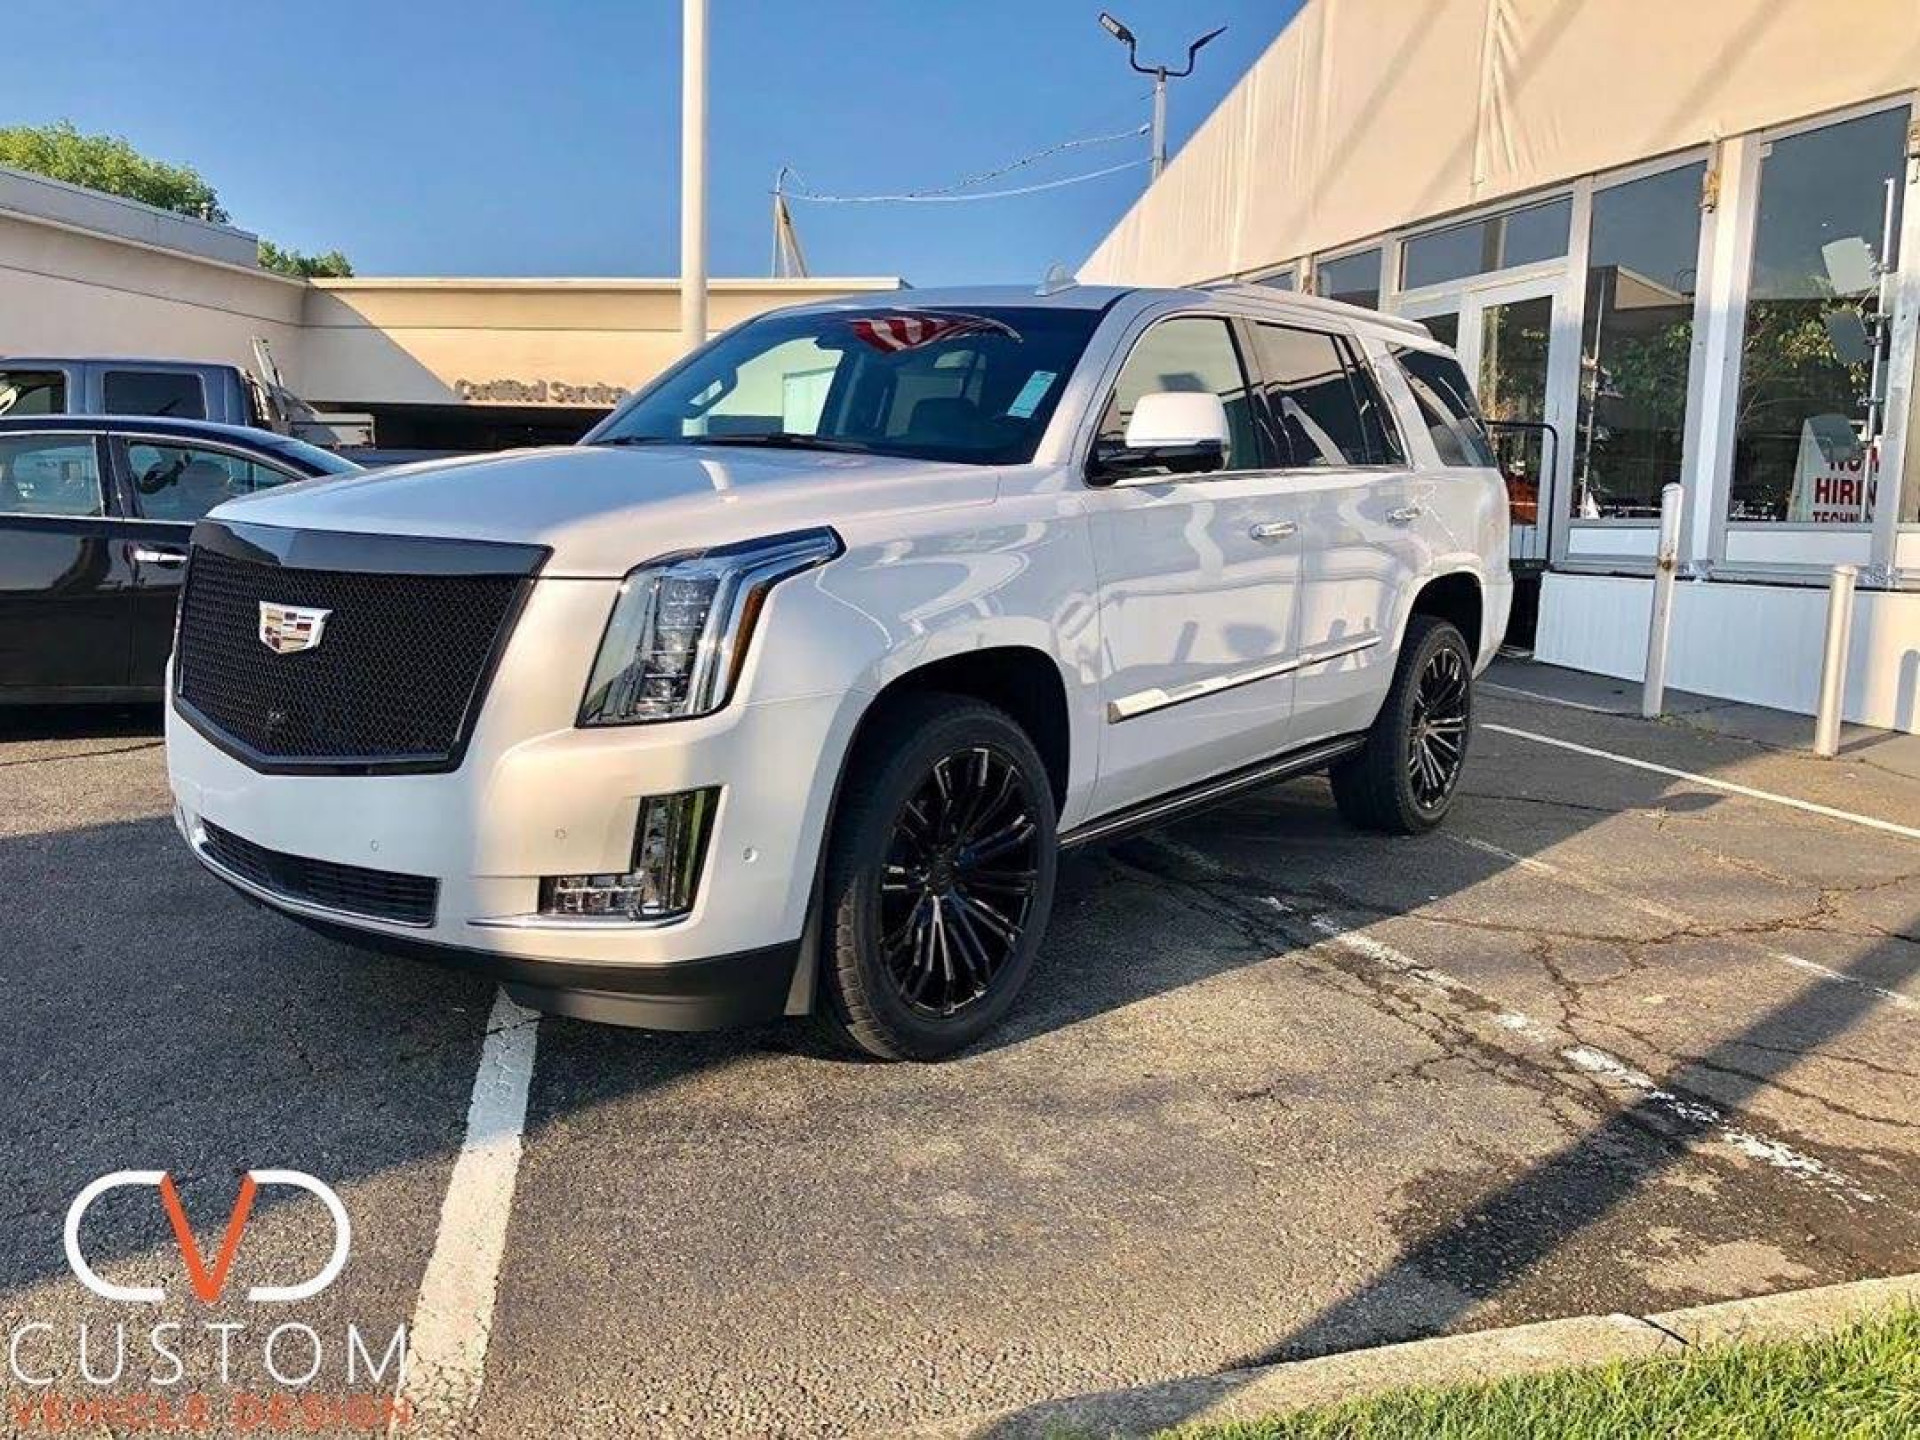 2020 Cadillac Escalade with Vogue VT386 wheels customized by CVD